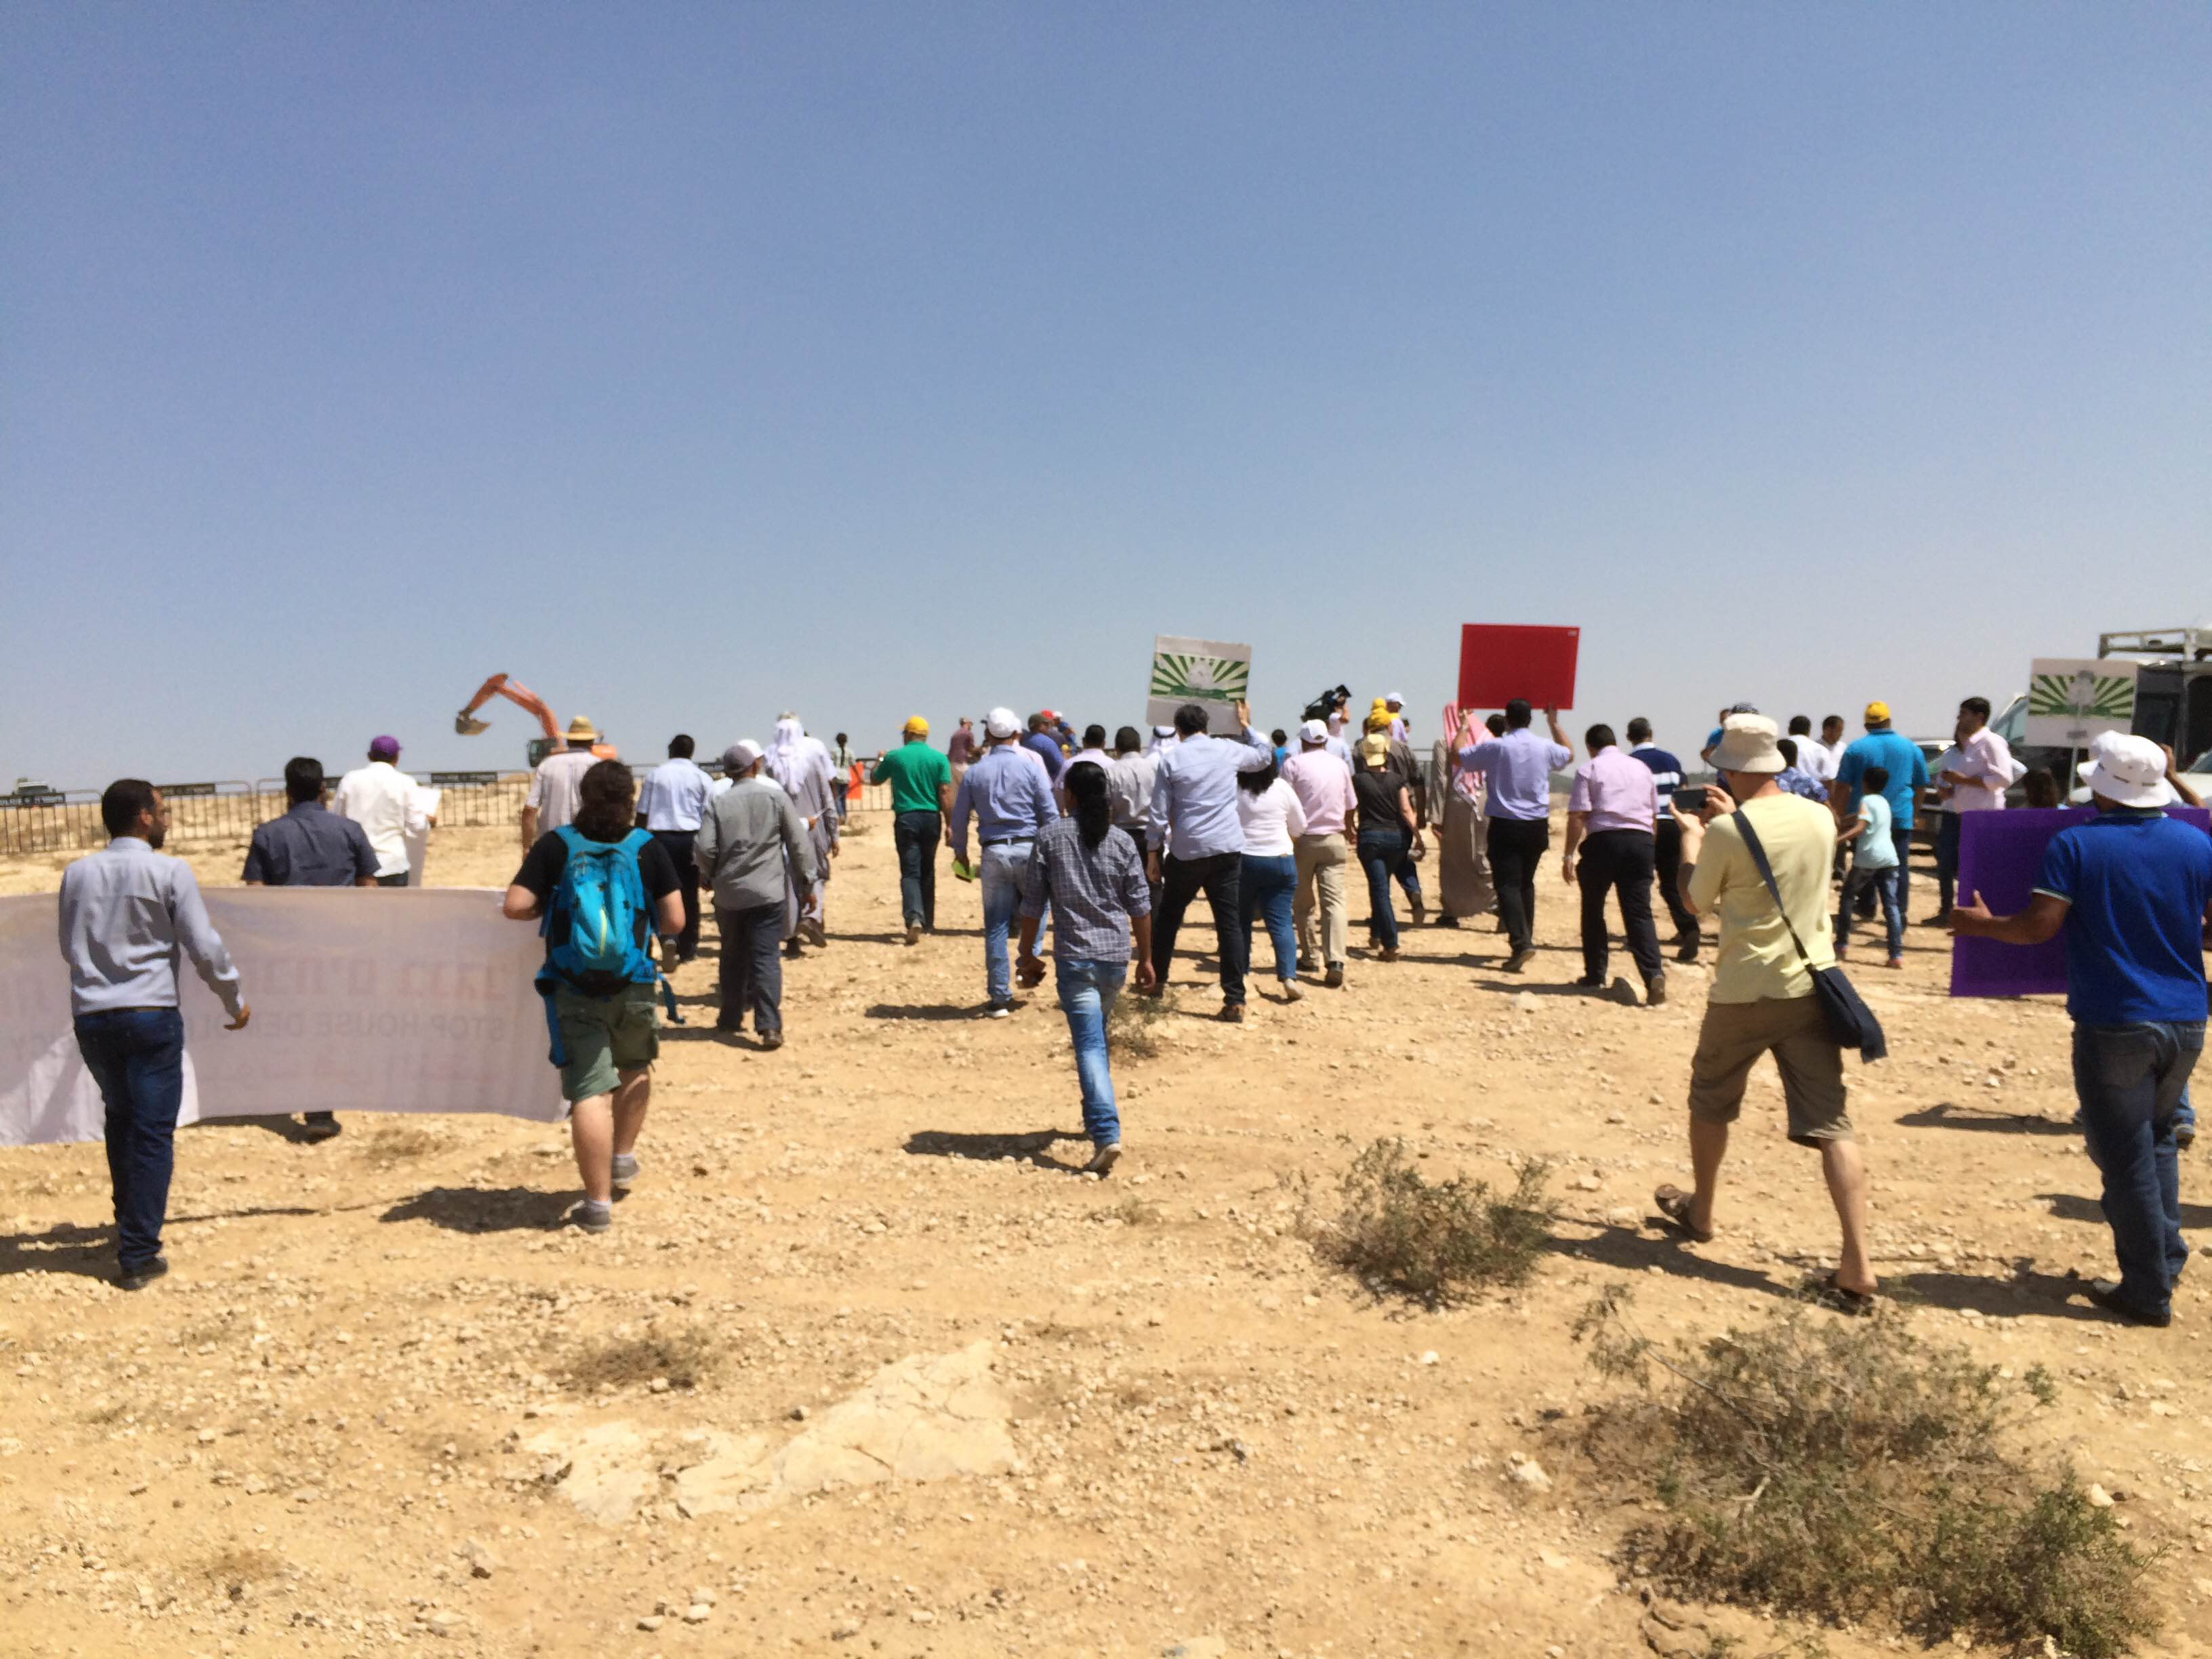 Protesters march as construction begins for Jewish town to replace Bedouin village. August 27, 2015 (Amjad Iraqi / Adalah)